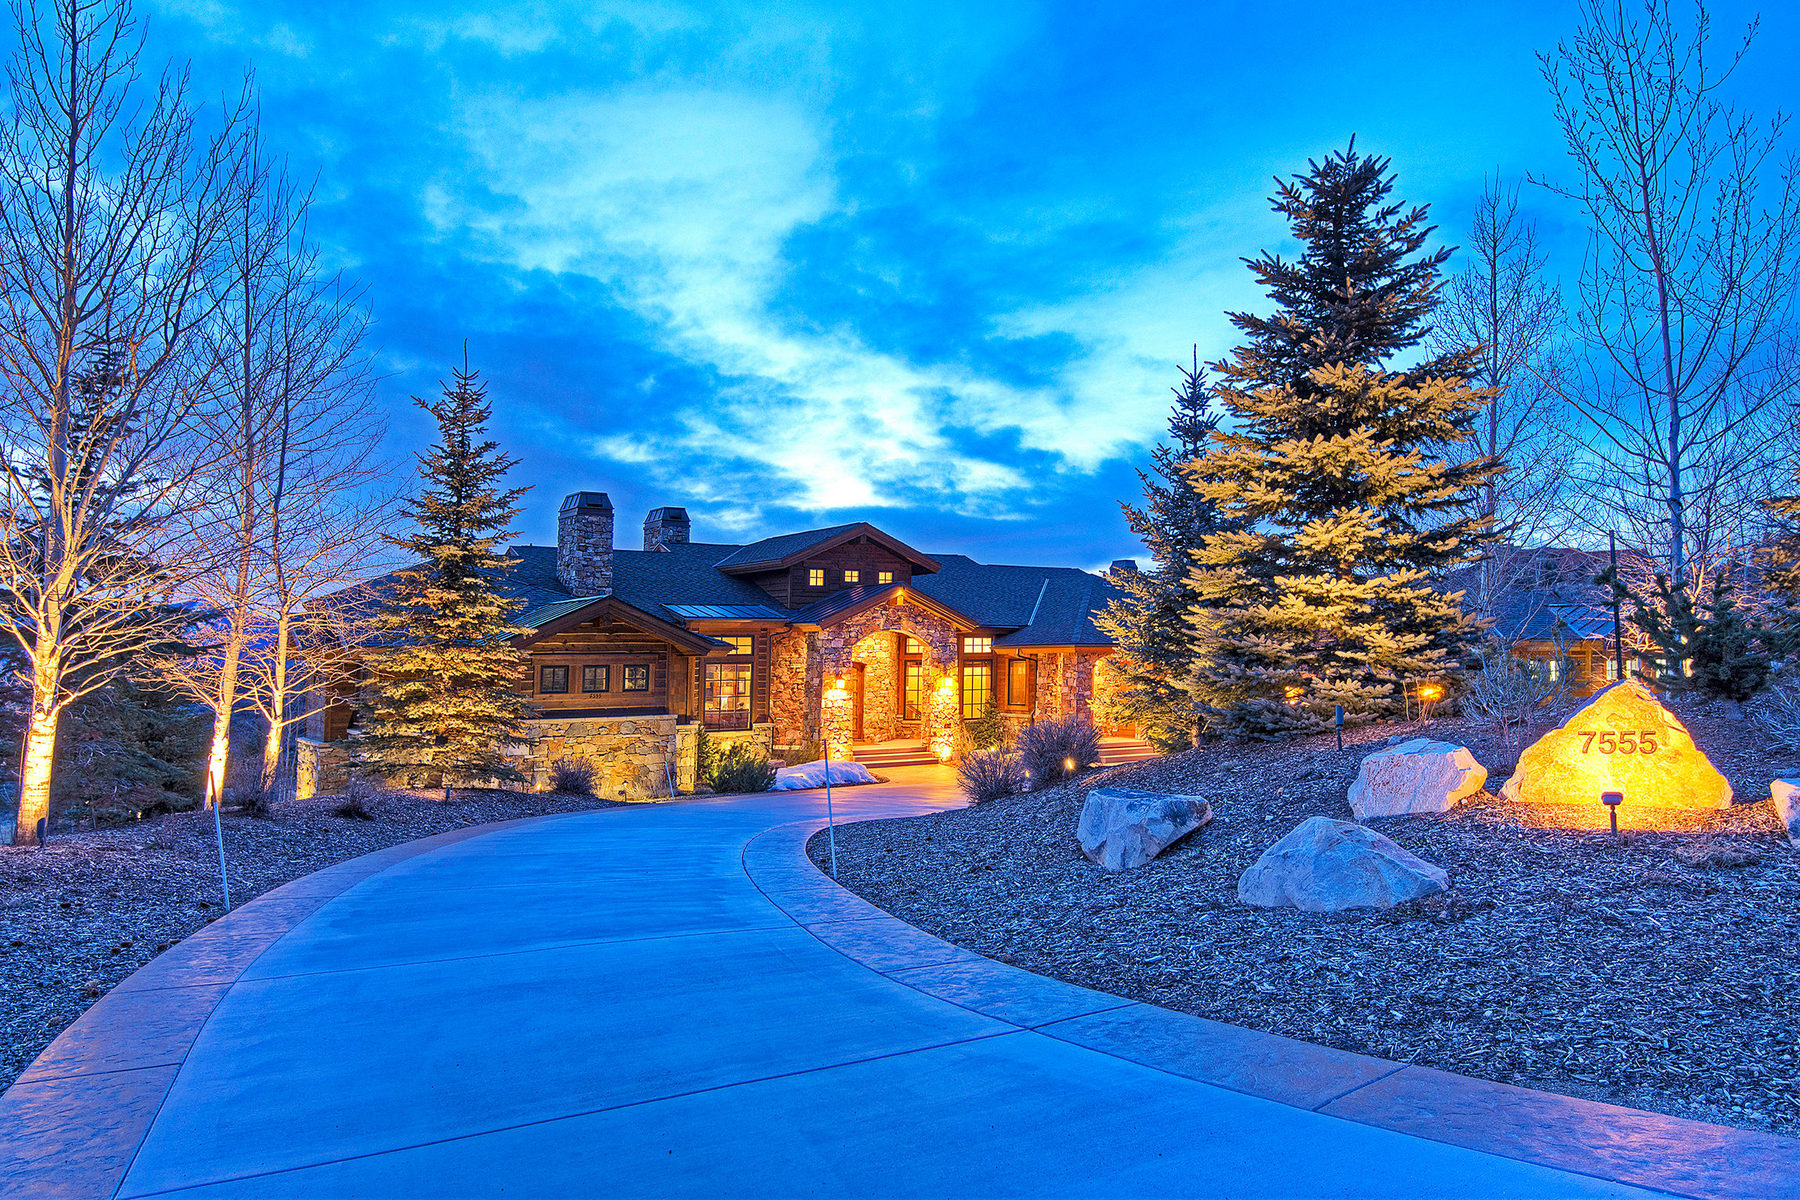 Casa Unifamiliar por un Venta en Stunning Promontory Mountain Home With Golf & Ski Resort Views 7555 N. Ranch Club Trail Lot 23 Park City, Utah 84098 Estados Unidos